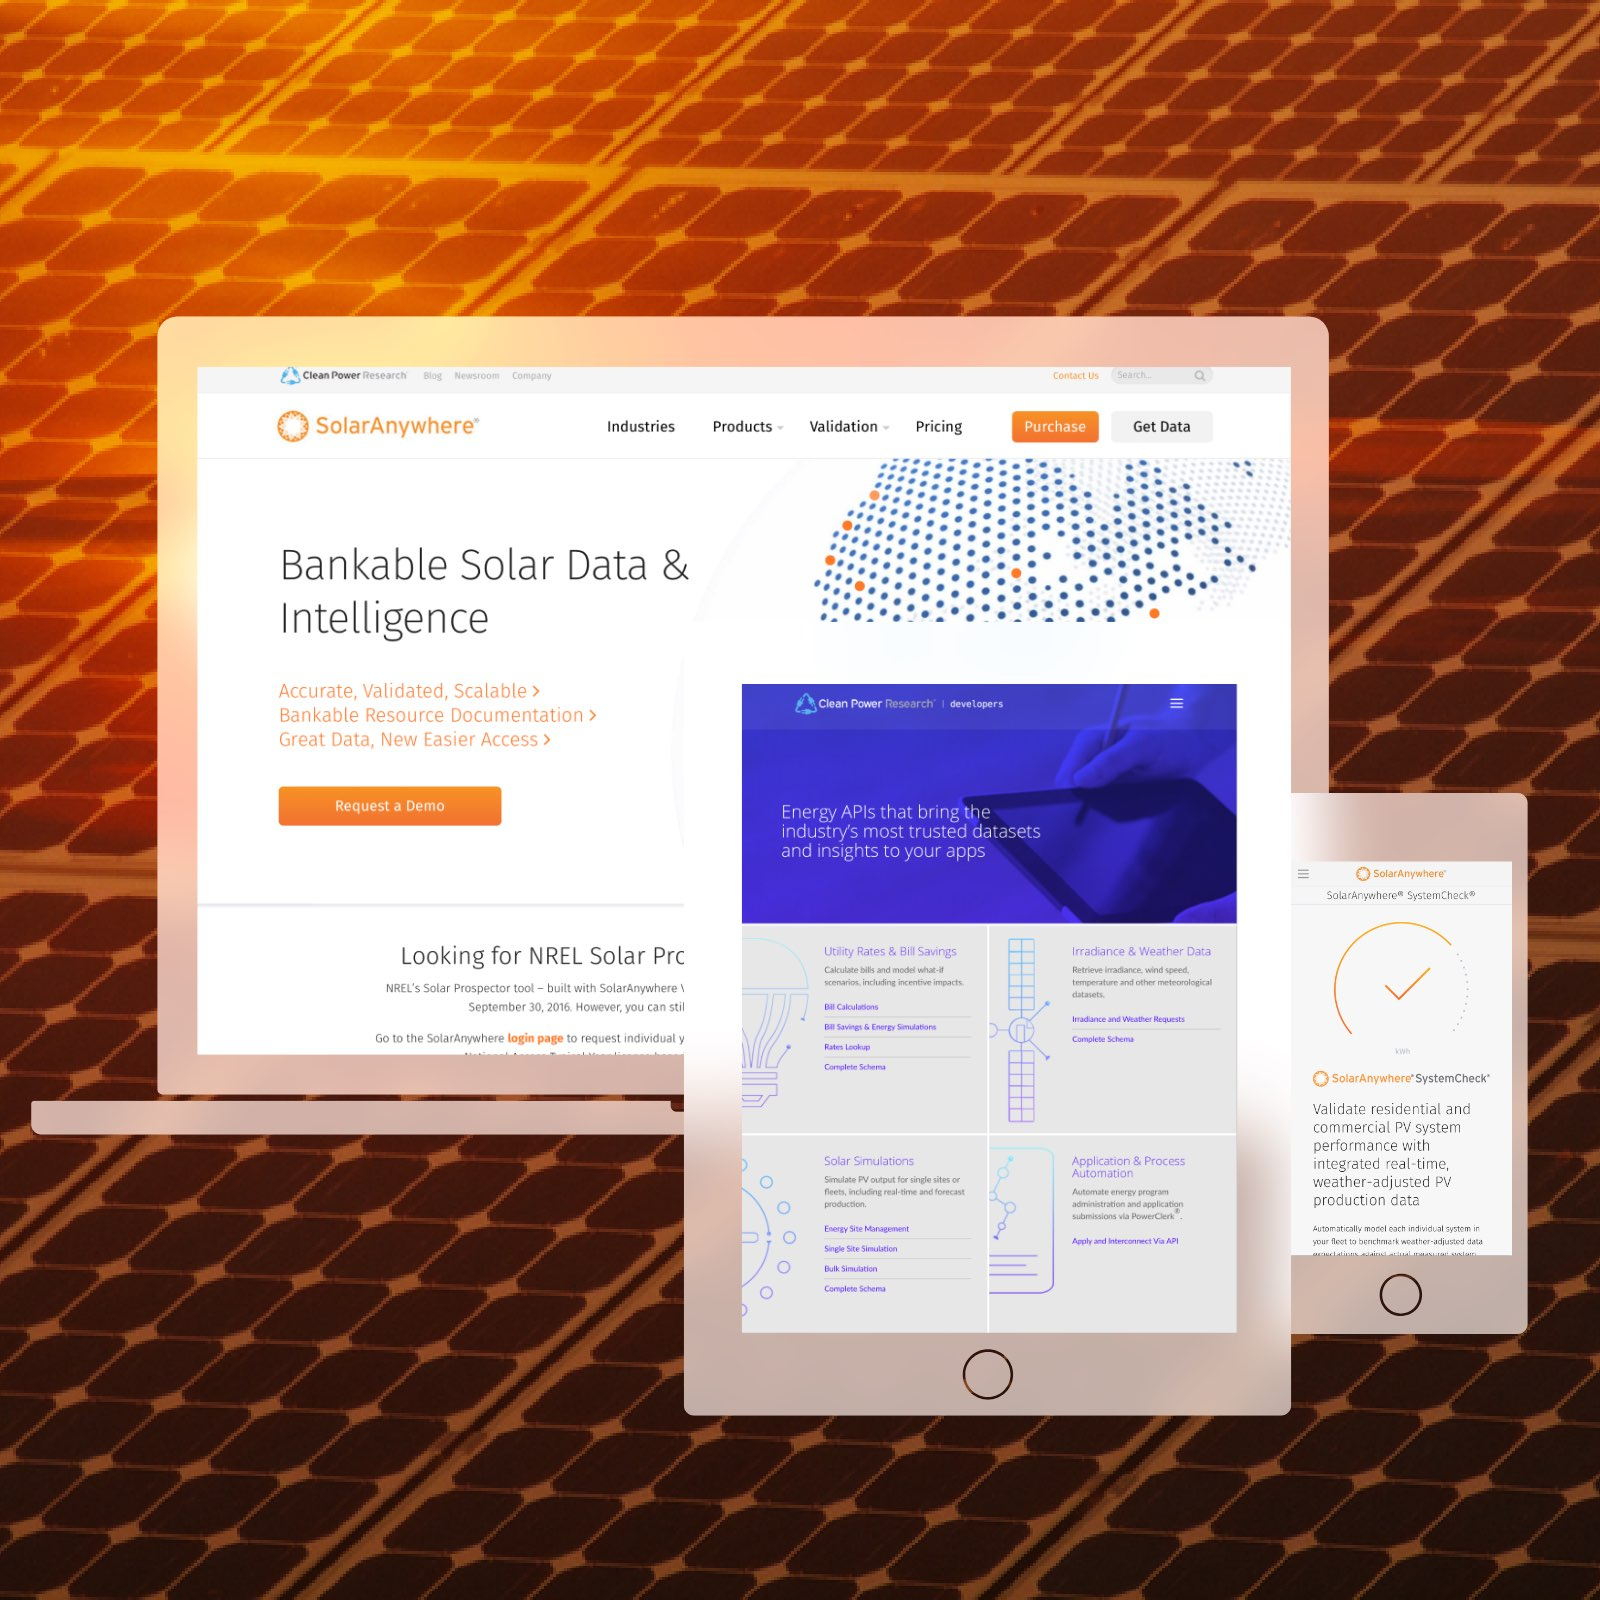 Teaser Of The Clean Power Research And Solar Anywhere Websites